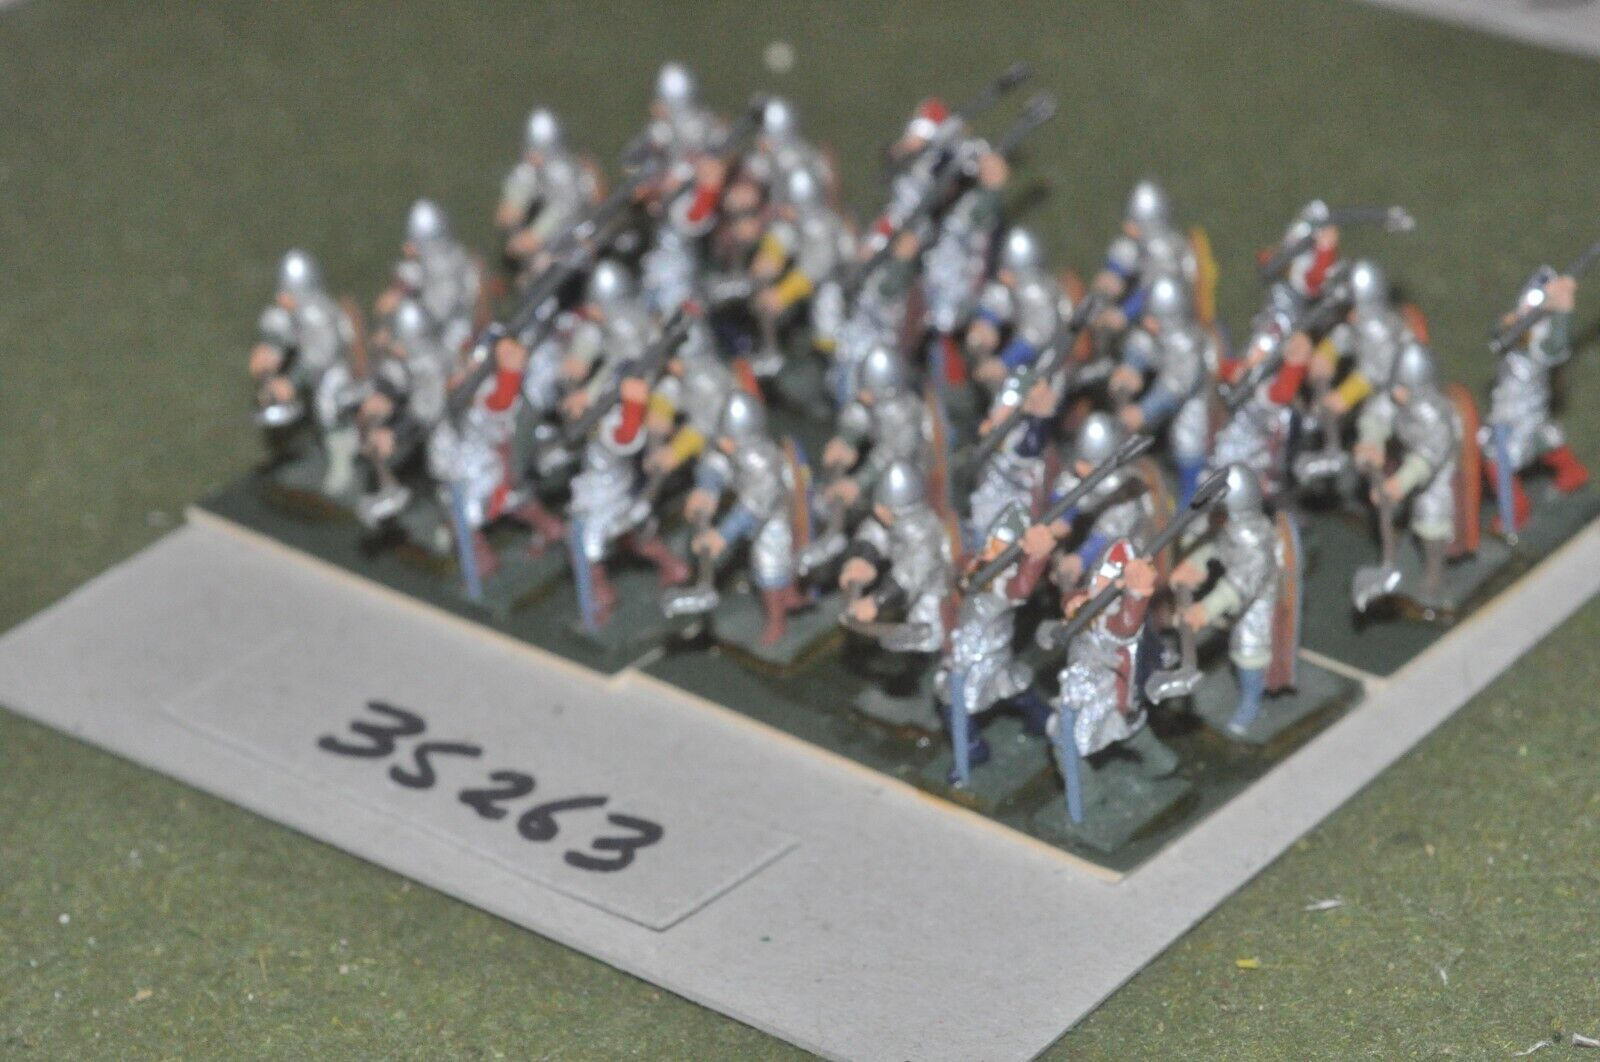 25mm edades Oscuro anglo-danés-husCochels 32 figuras-INF (35263)